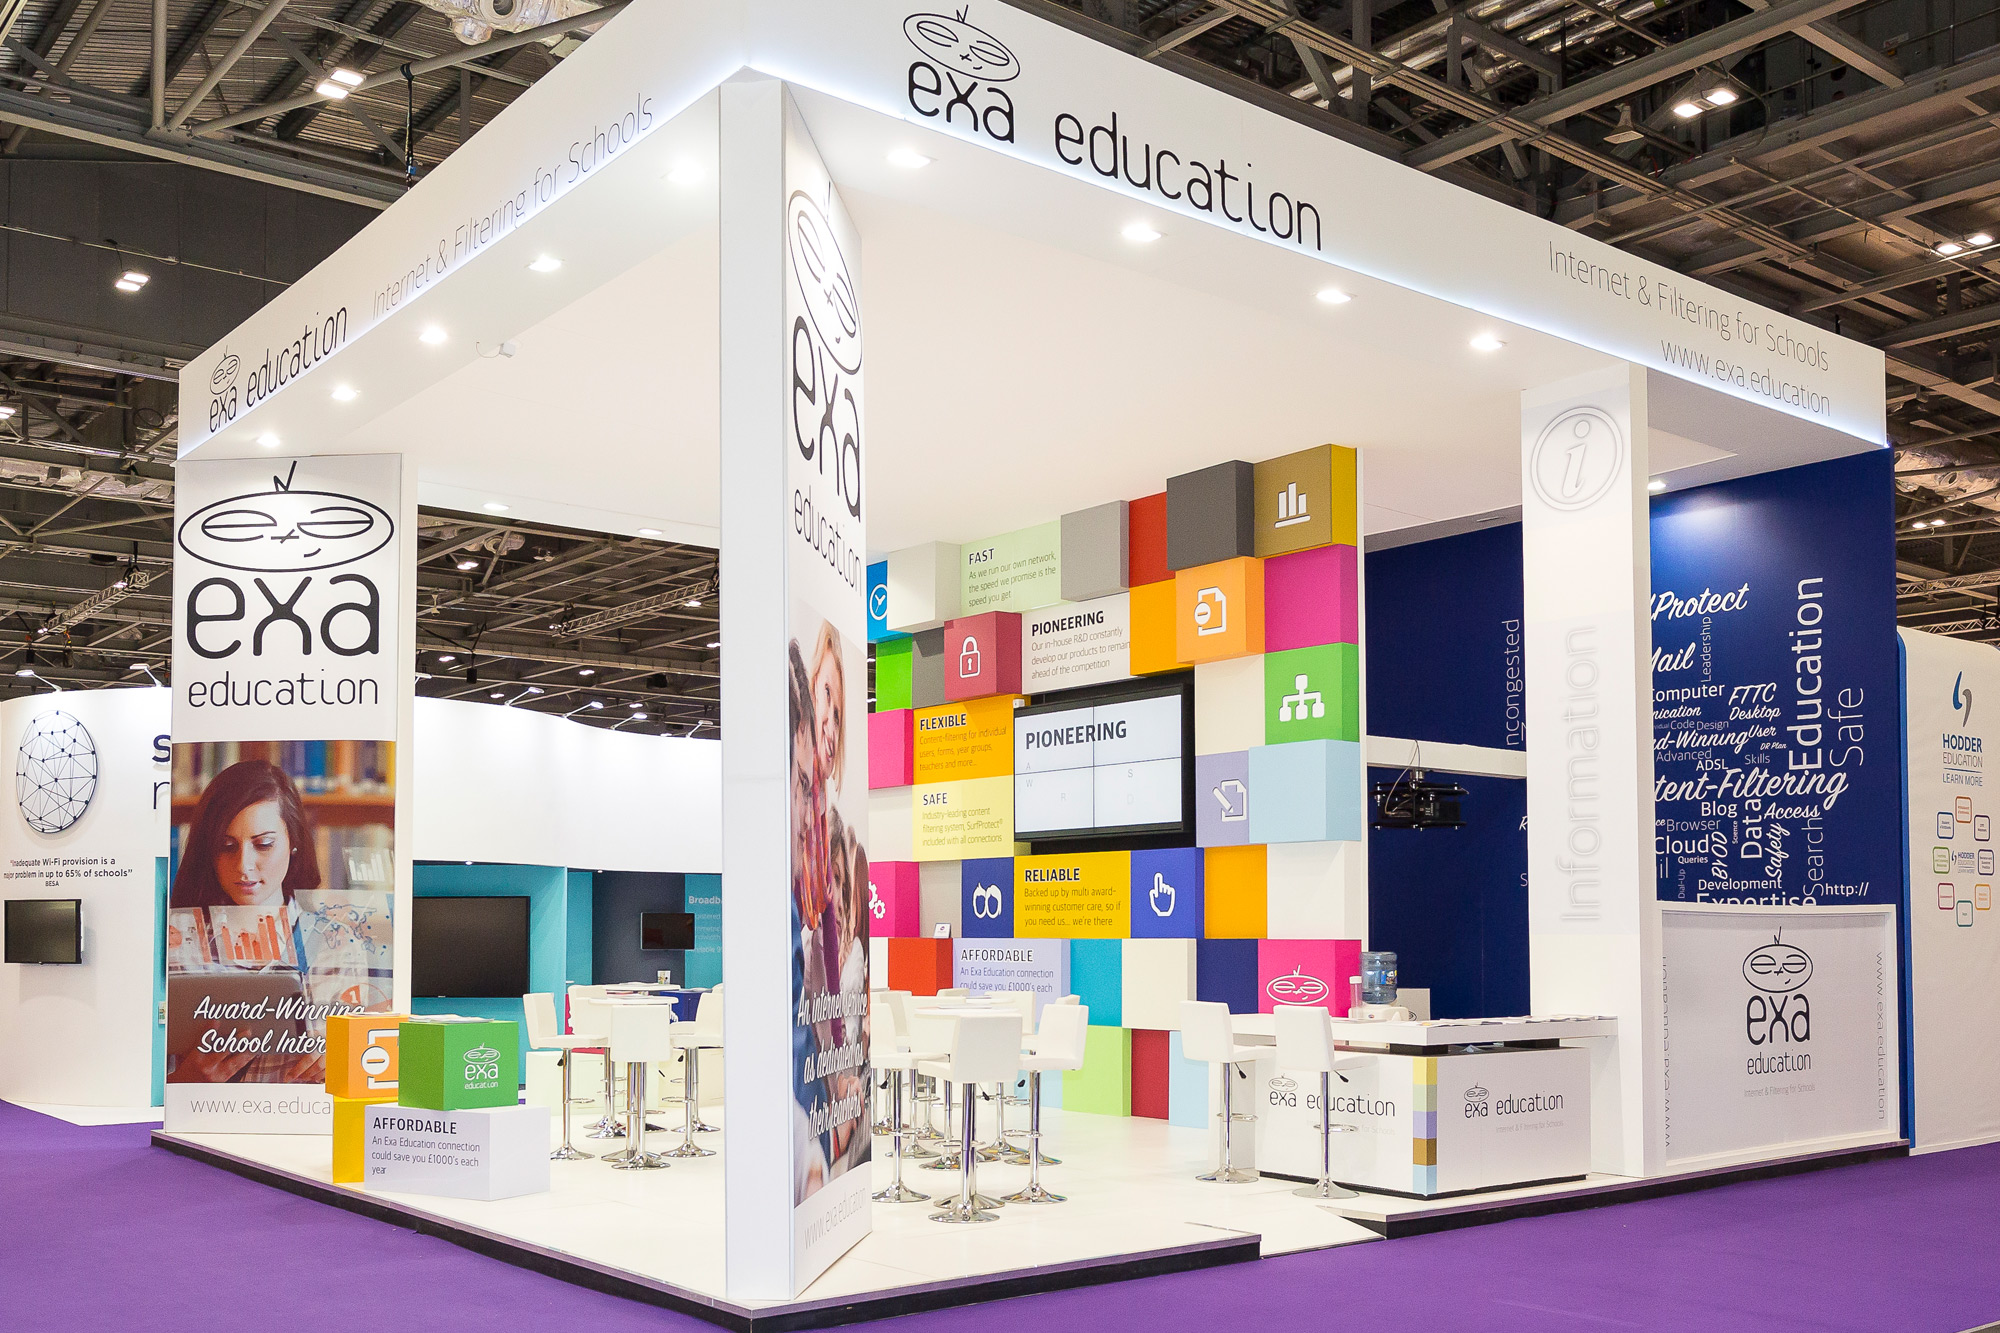 Exhibition Design for Exa Education at Bett